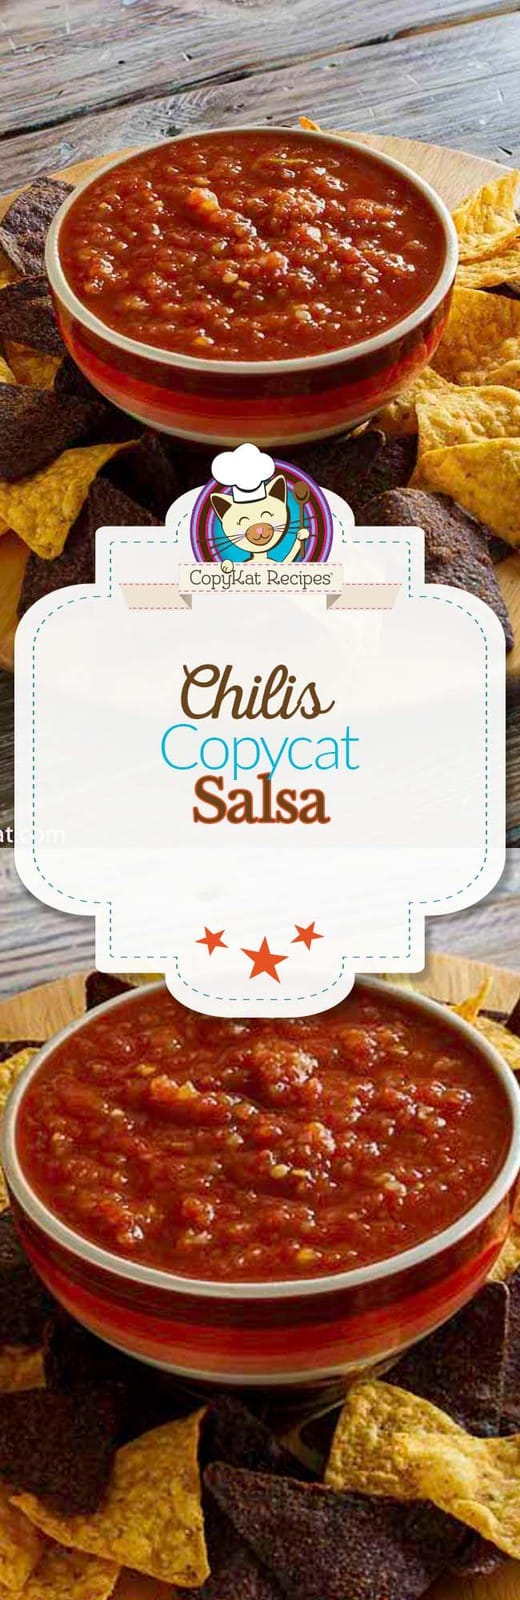 Learn how to make copycat salsa just like Chilis.